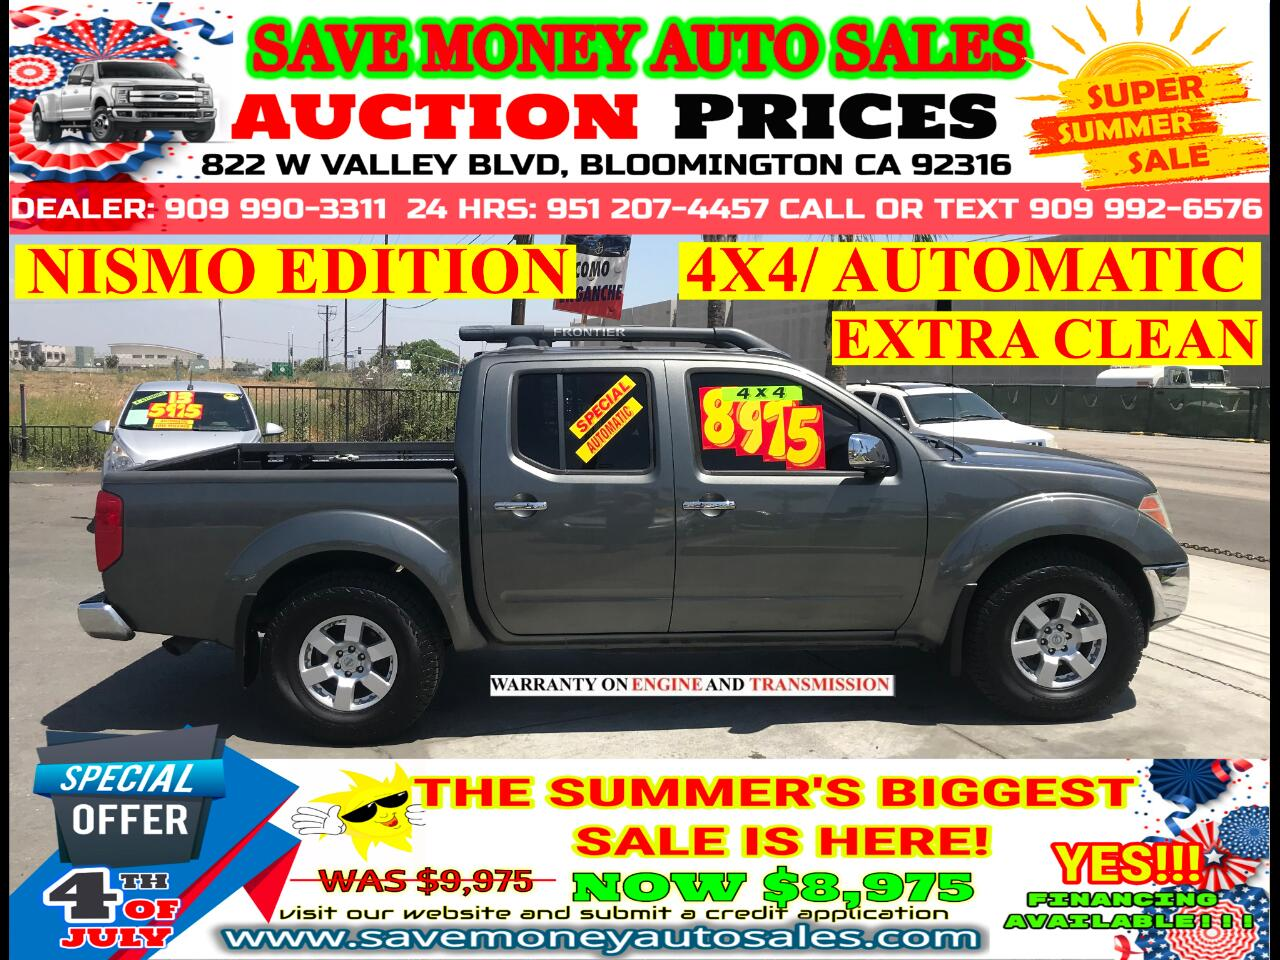 2007 Nissan Frontier 4X4> NISMO EDITION> EXTRA CLEAN> SUN ROOF> LOADED